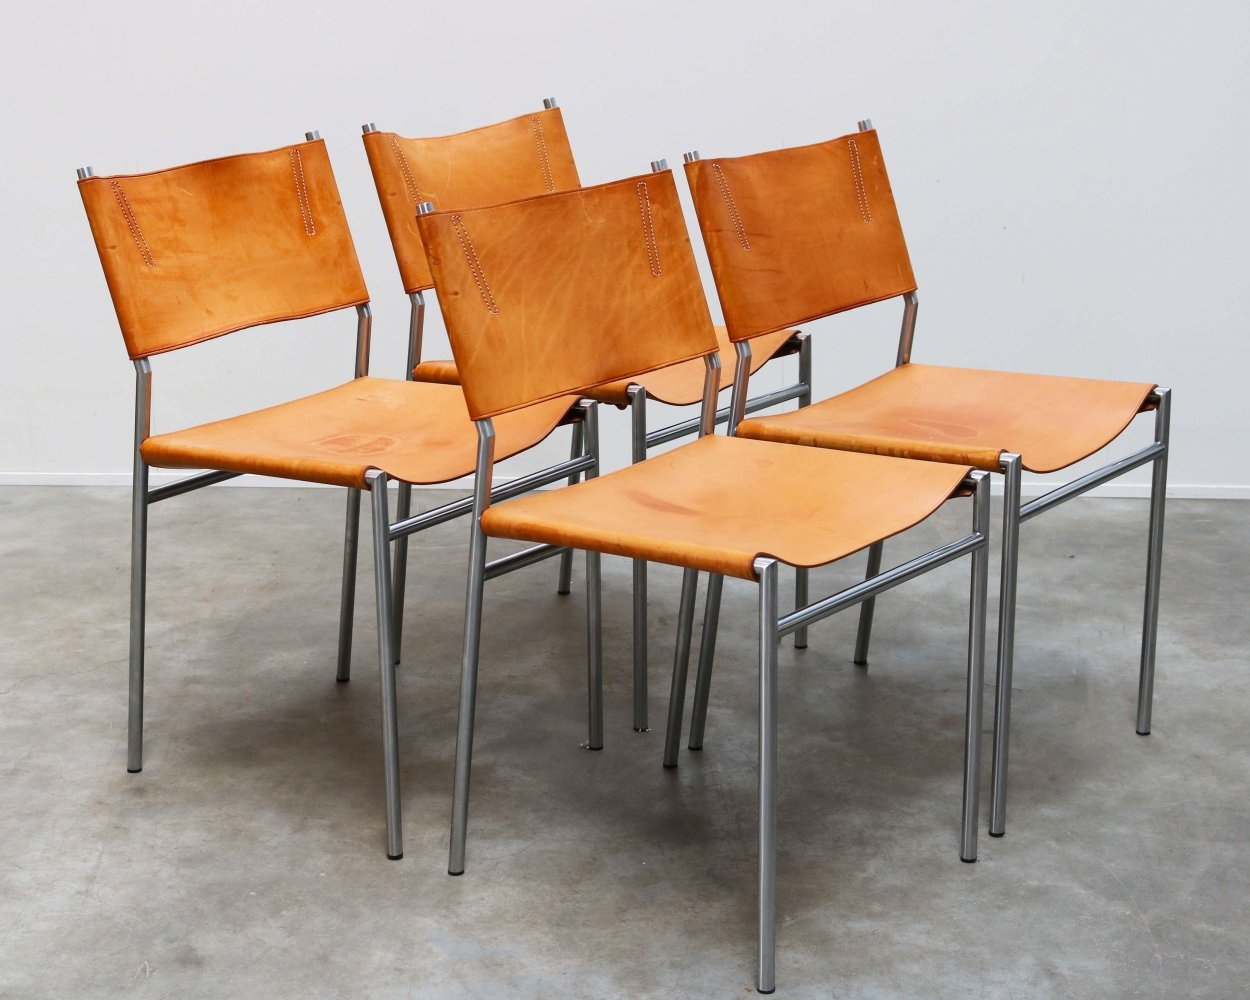 Set of four SE06 dining chairs in Cognac leather by Martin Visser for Spectrum